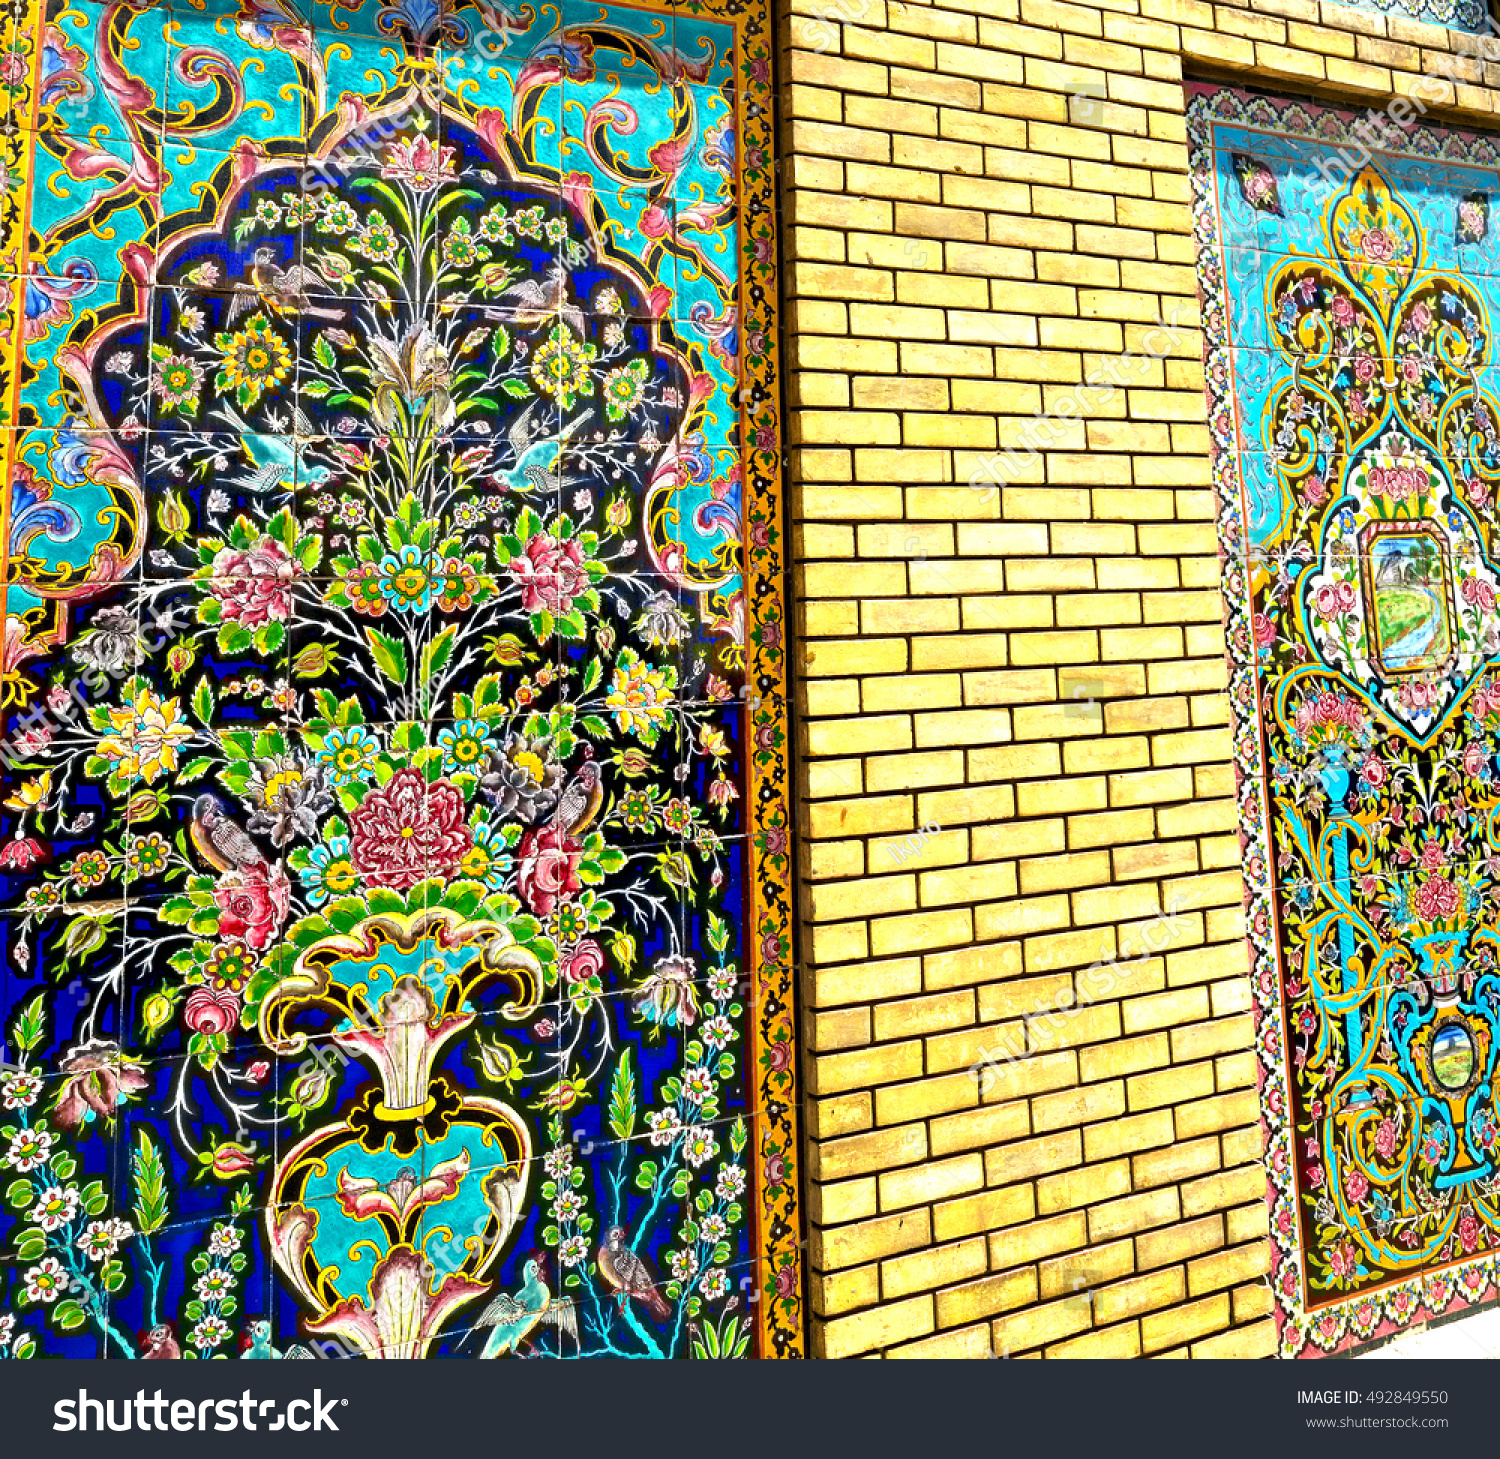 blur in iran the old decorative flower tiles from antique mosque ...